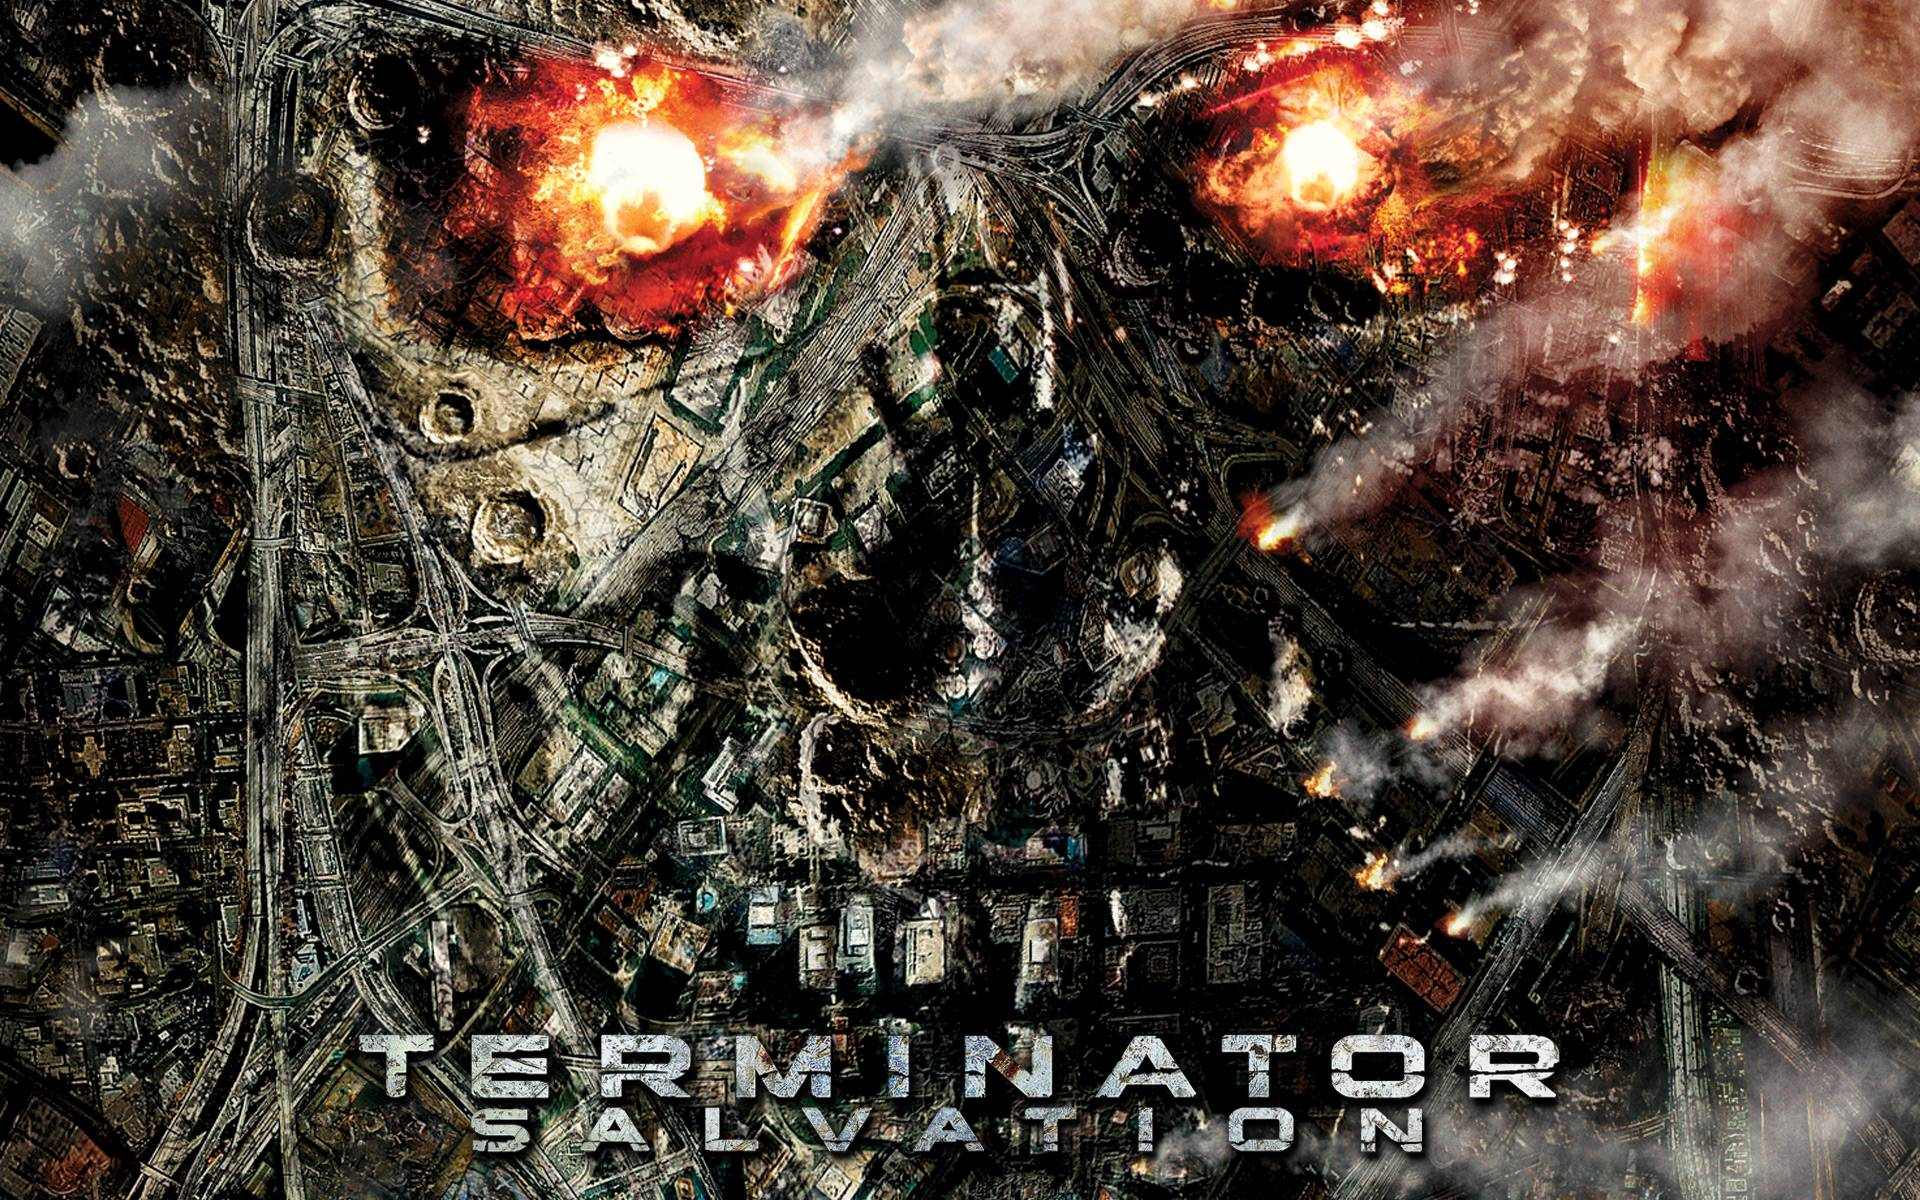 terminator salvation wallpaper hd - photo #2